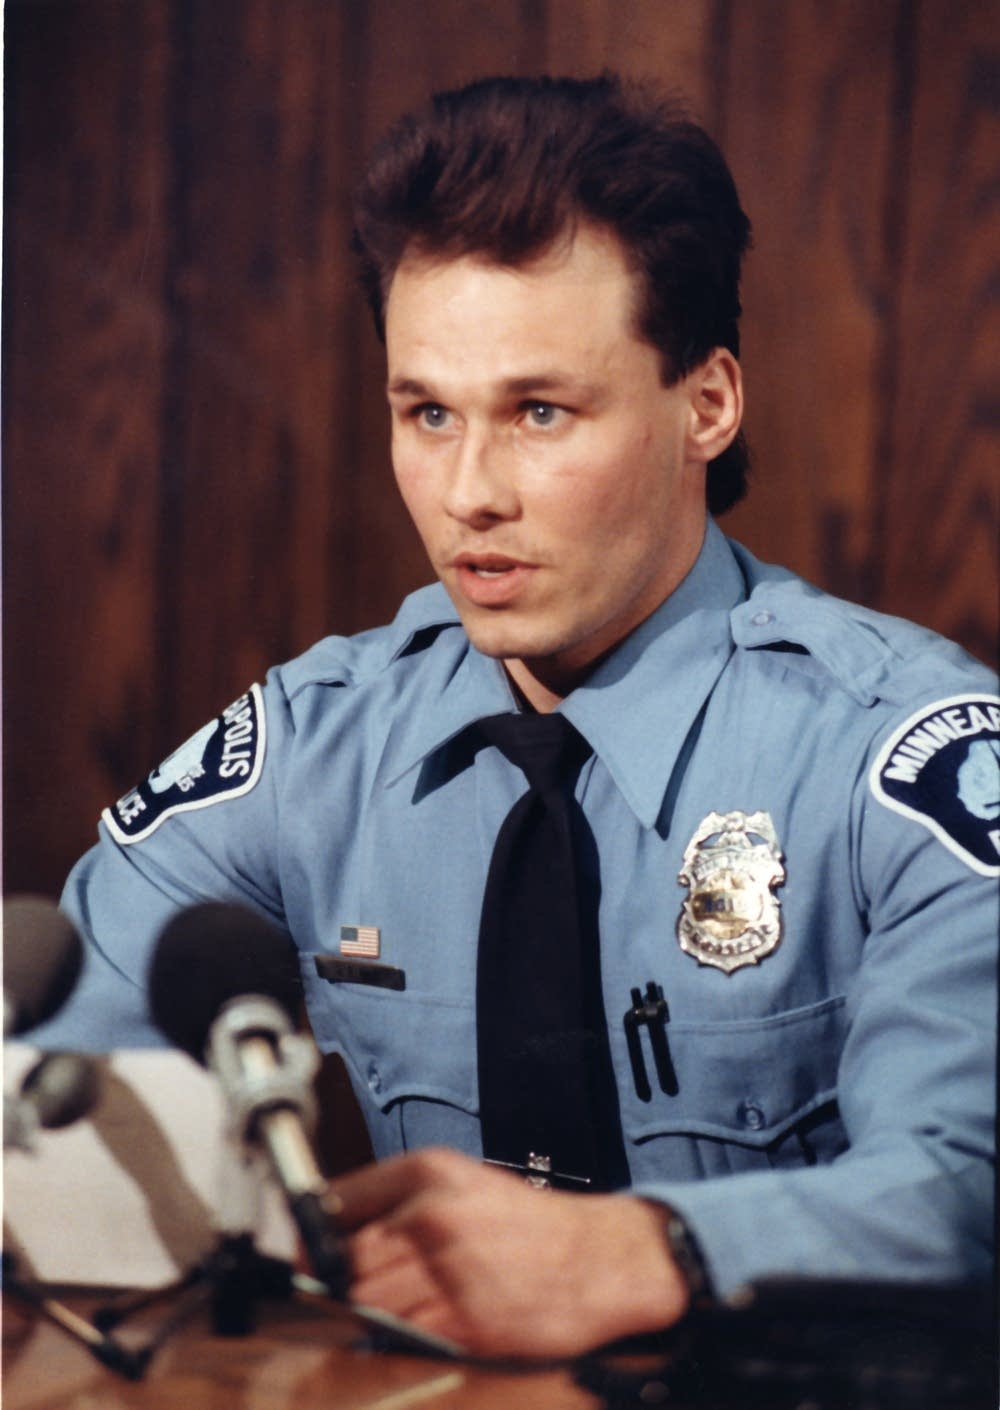 Minneapolis police officer Dan May